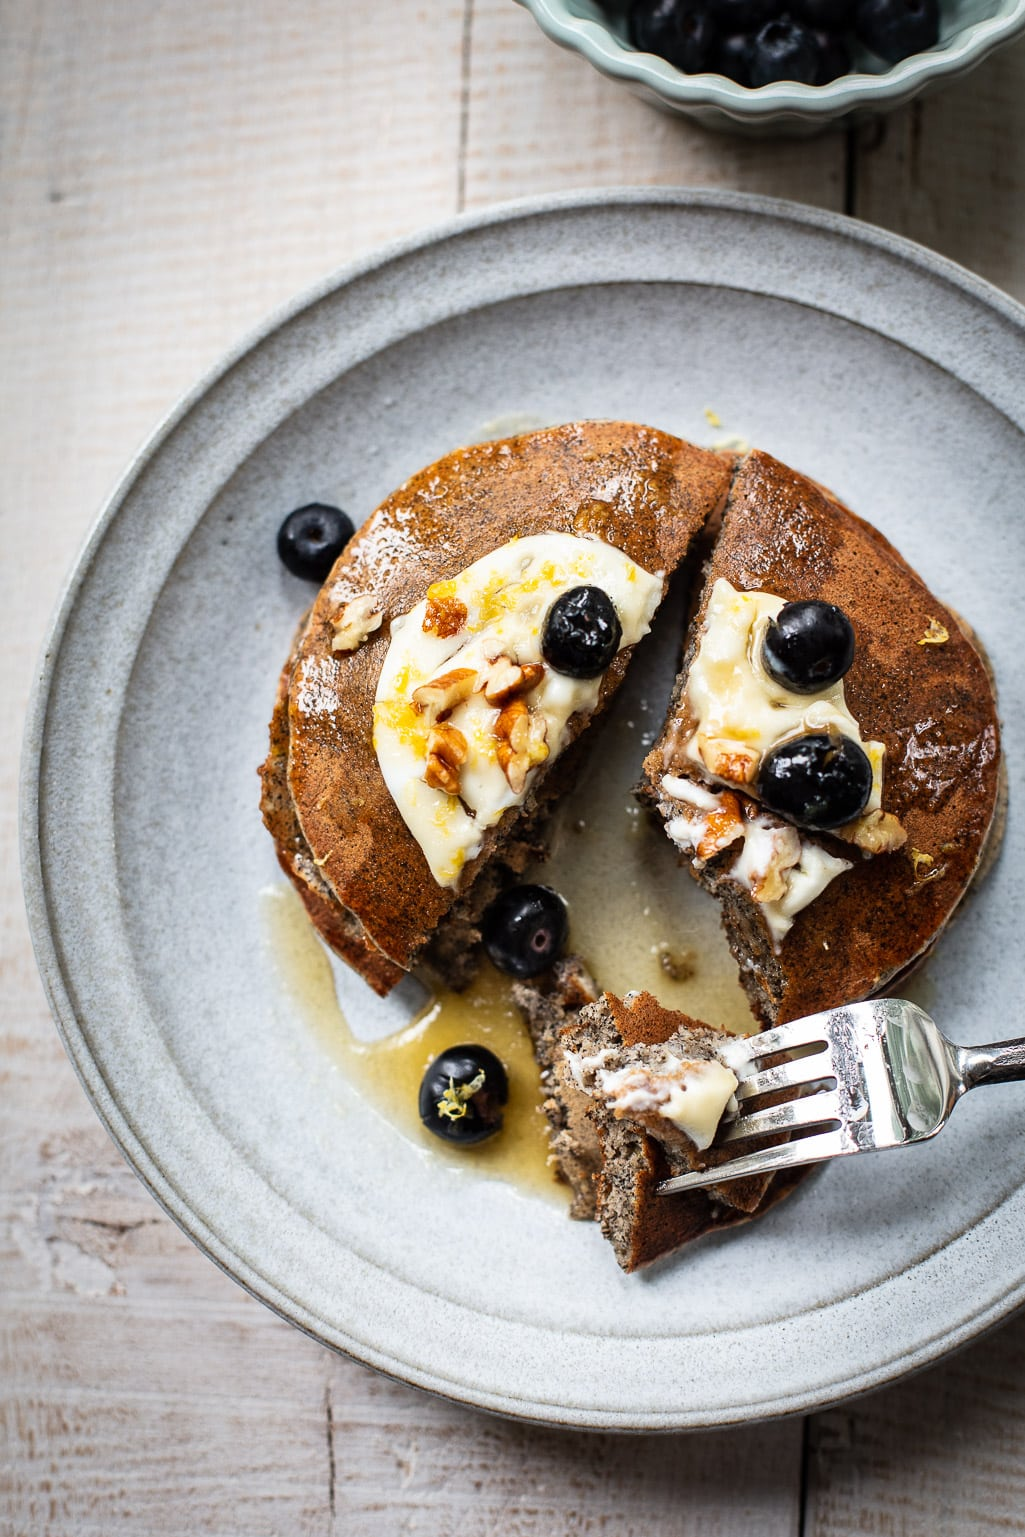 A stack of buckwheat flour pancakes on a gray plate, topped with blueberries, maple syrup and butter.